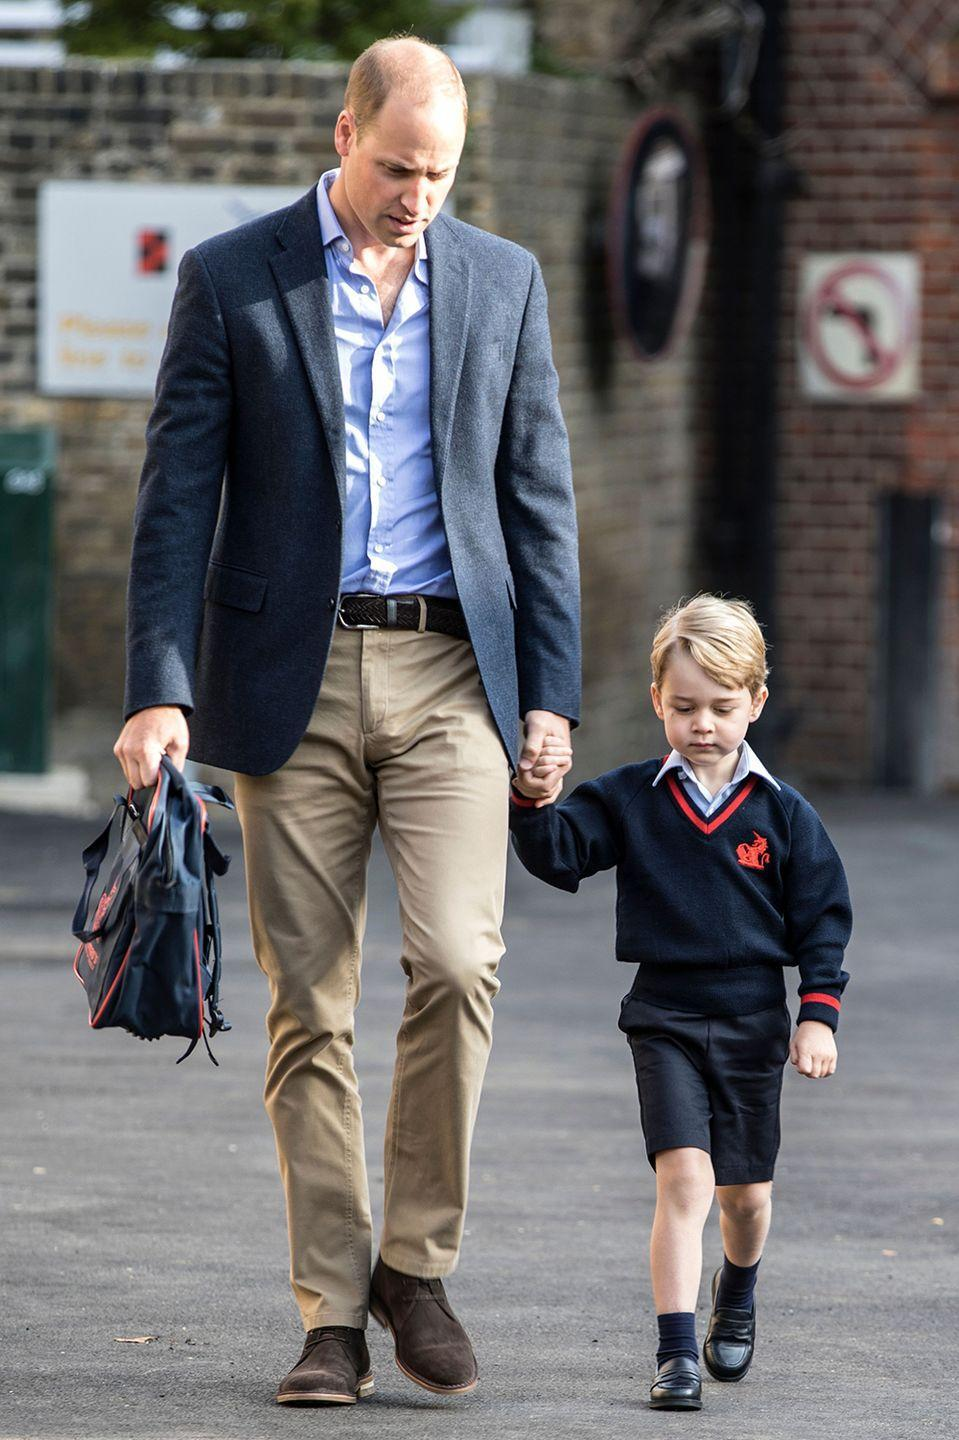 """<p>This year, Prince George will simply be known as <a href=""""https://www.marieclaire.com.au/what-classmates-will-call-prince-george"""" rel=""""nofollow noopener"""" target=""""_blank"""" data-ylk=""""slk:George Cambridge"""" class=""""link rapid-noclick-resp"""">George Cambridge</a><span class=""""redactor-invisible-space"""">. </span></p>"""